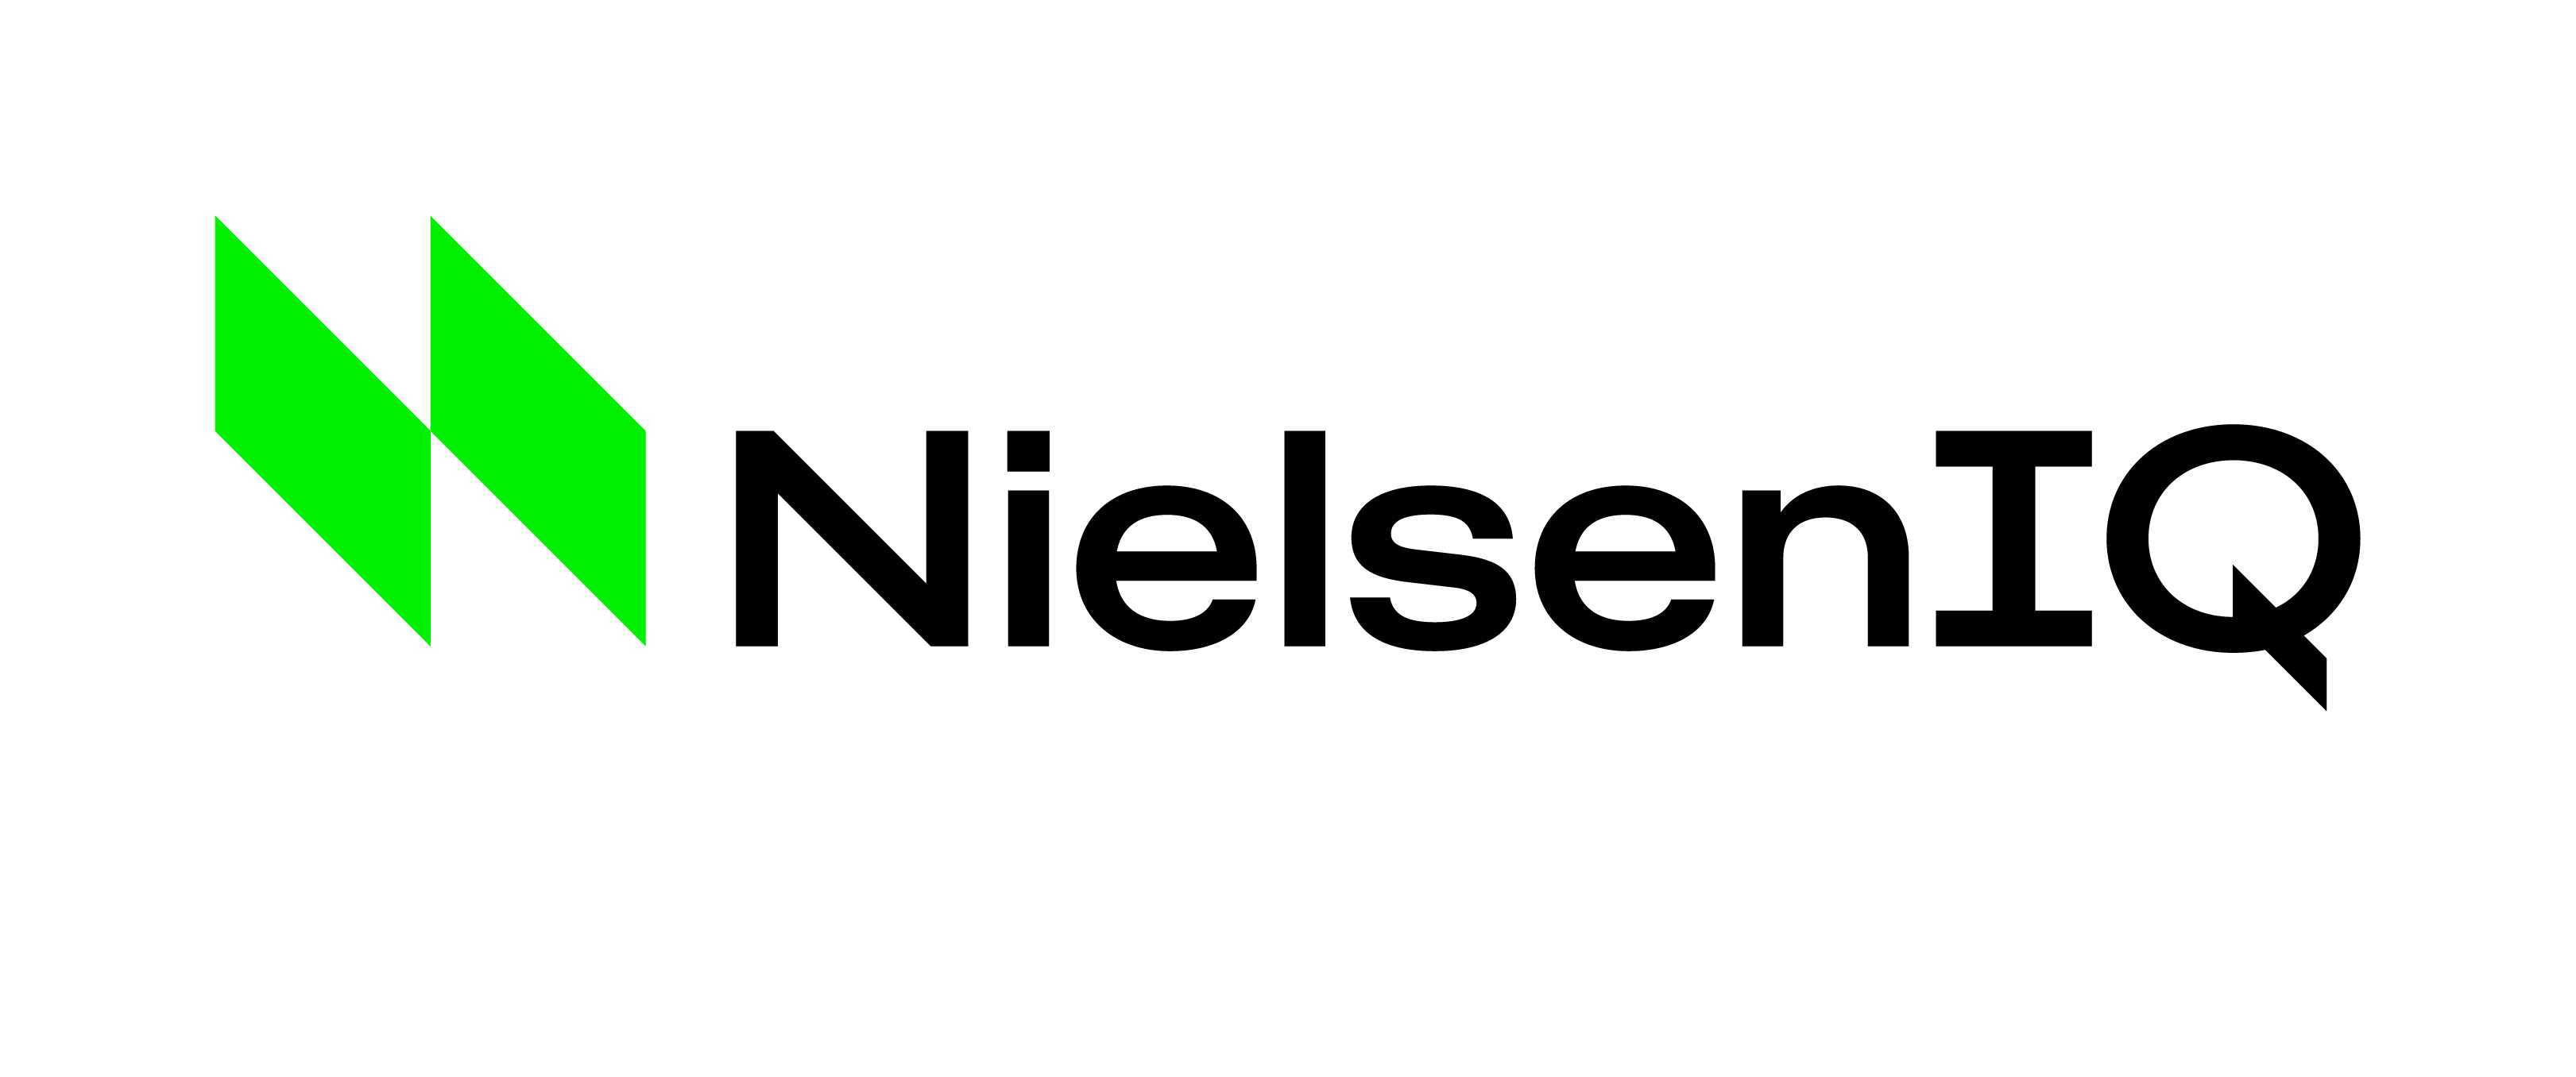 NielsenIQ templates and assets Logo